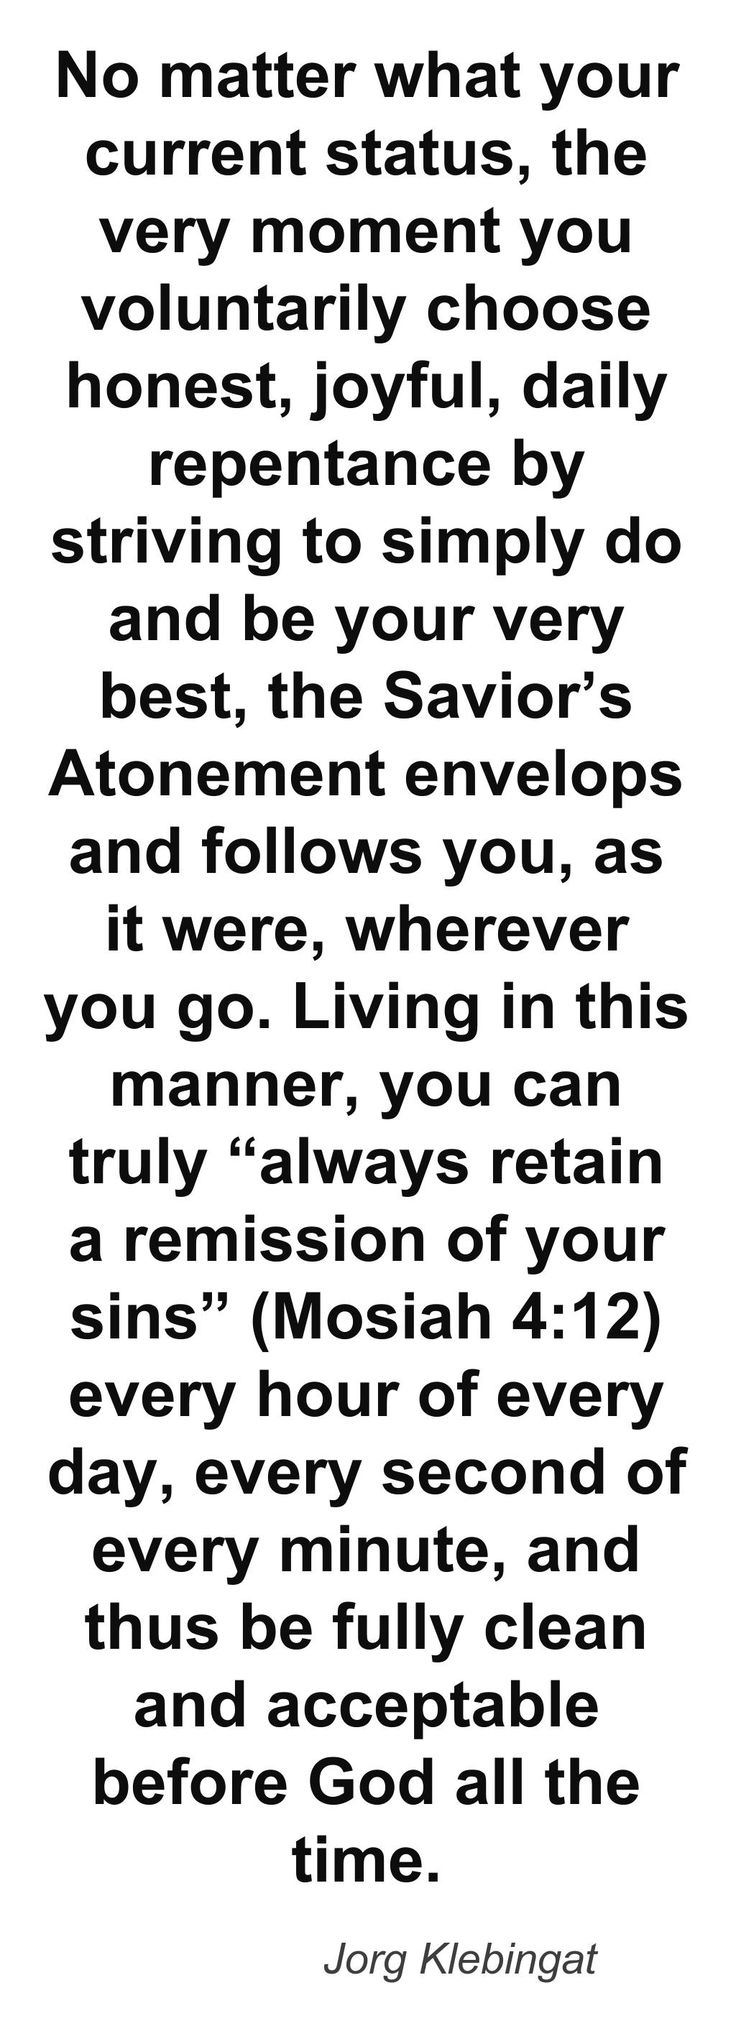 """What it means to be """"perfect in Christ"""". No matter what your current status, the very moment you voluntarily choose honest, joyful, daily repentance by striving to simply do and be your very best, the Savior's Atonement envelops and follows you, as it were, wherever you go. Living in this manner, you can truly """"always retain a remission of your sins"""" (Mosiah 4:12) every hour of every day, every second of every minute, and thus be fully clean and acceptable before God all the time…"""